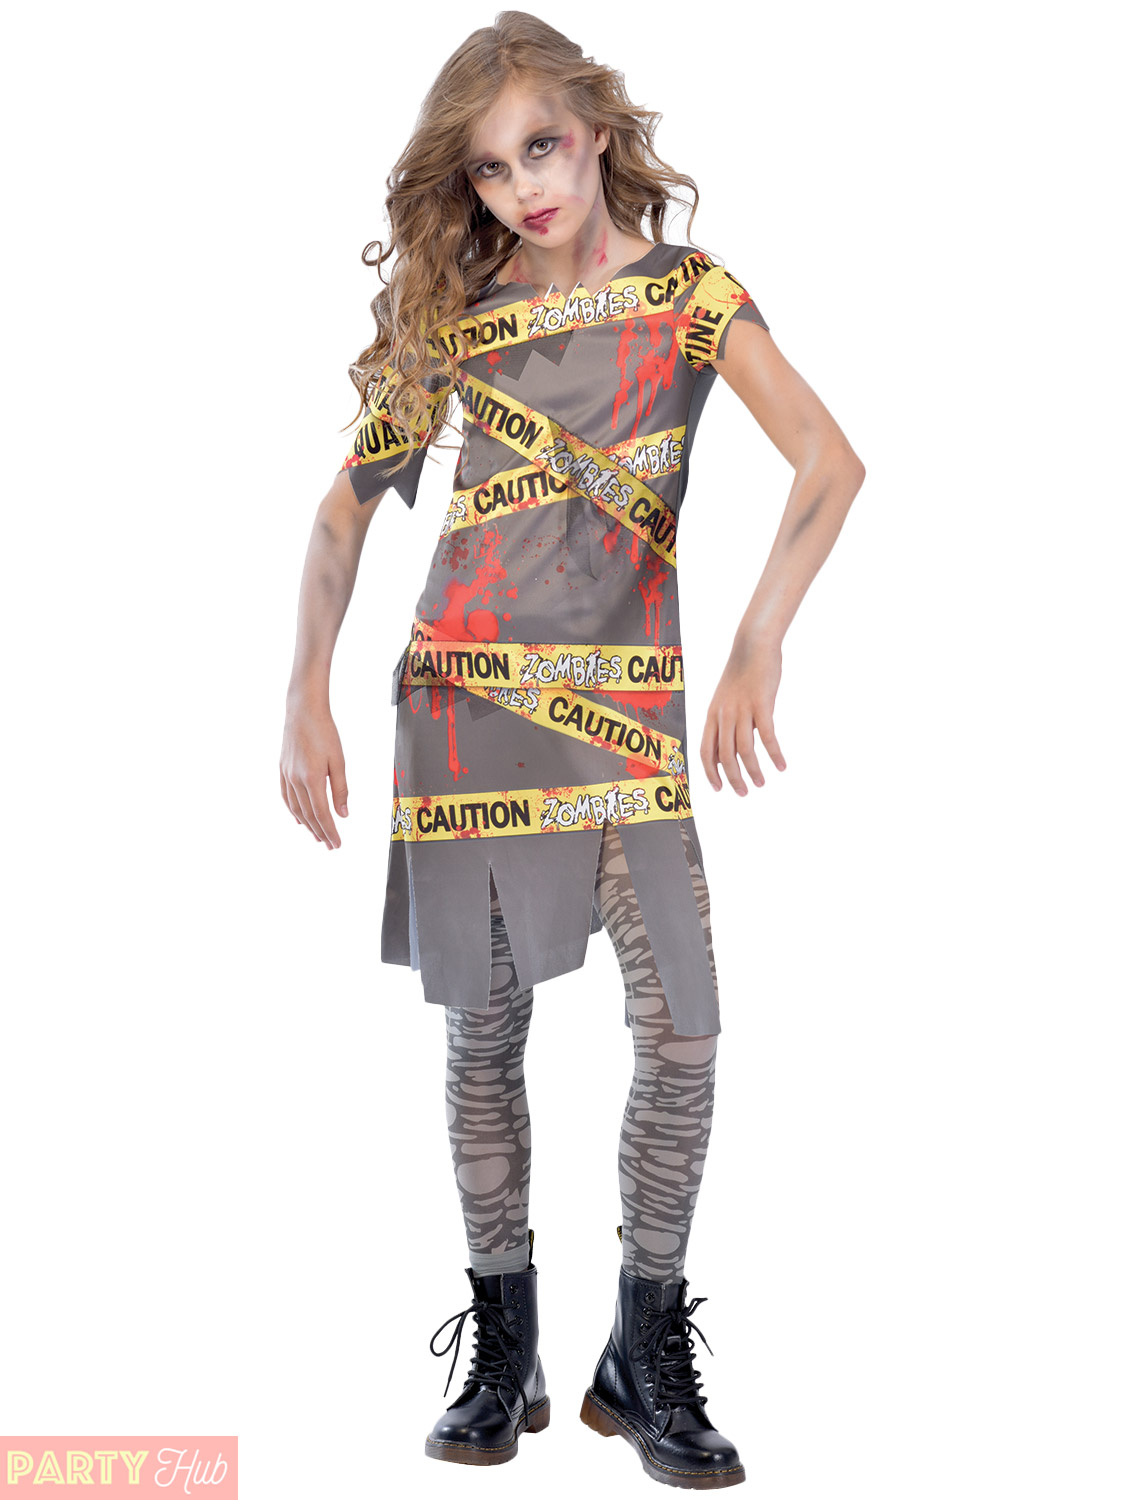 Halloween Zombie Costumes For Girls.Details About Girls Caution Zombie Costume Childs Halloween Fancy Dress Horror Kids Outfit